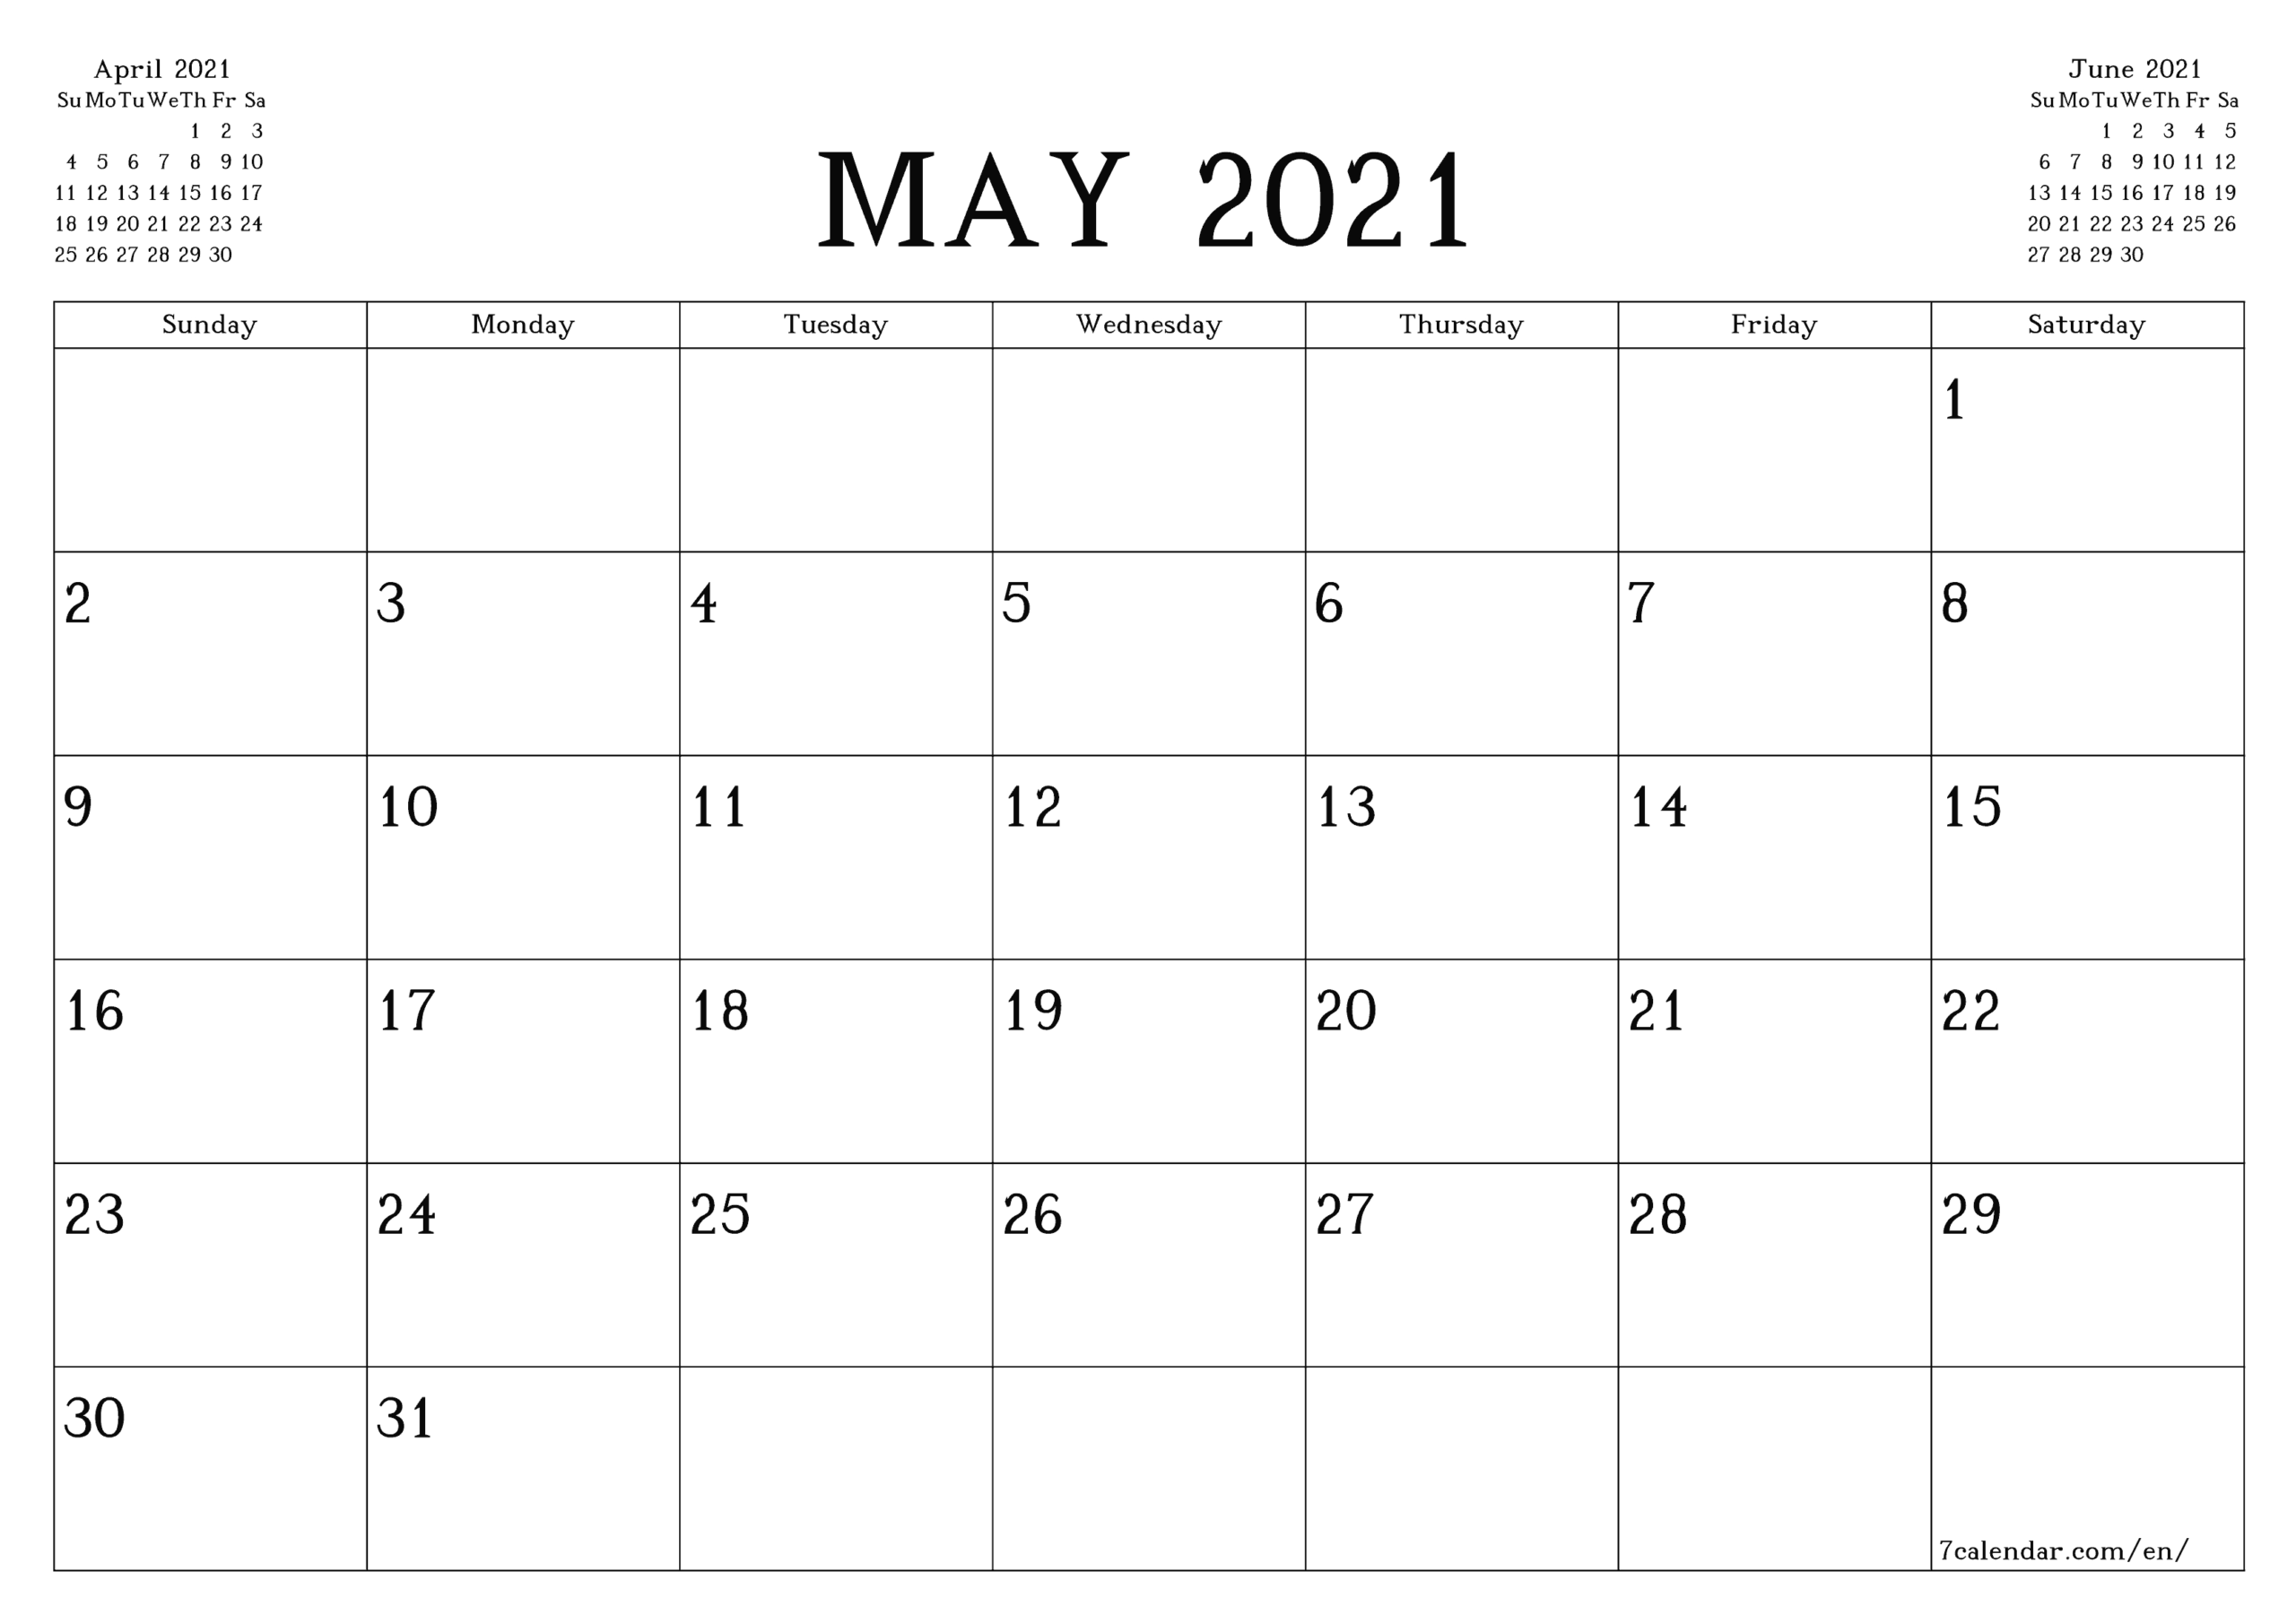 Printable May Calendar 2021 With Lines | Free Printable with regard to Free Printable Calendars 2021 With Lines